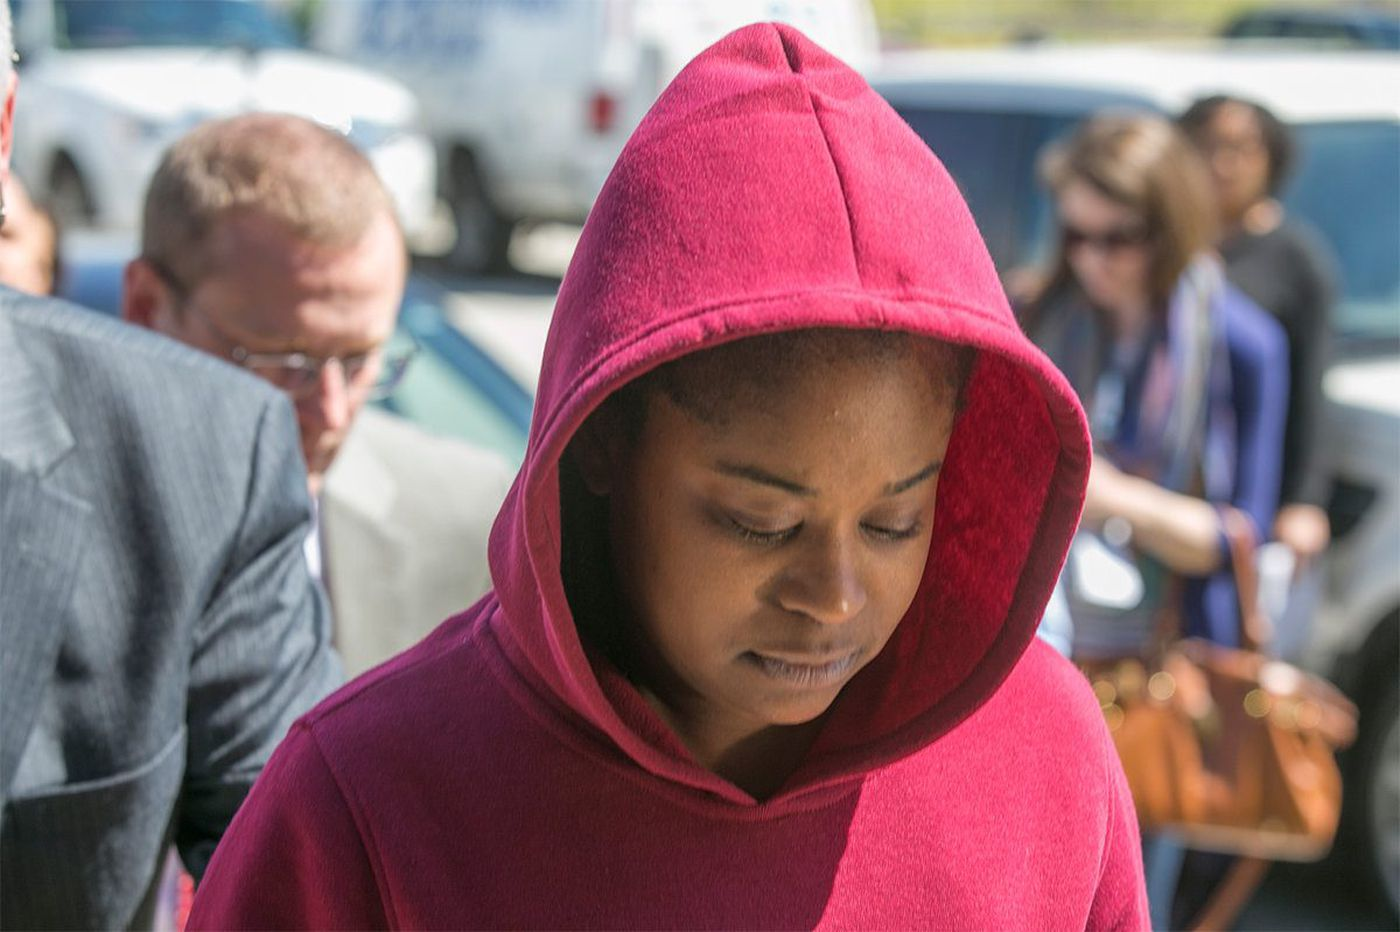 Cherie Amoore: Up to 7 years in state prison for baby-snatching